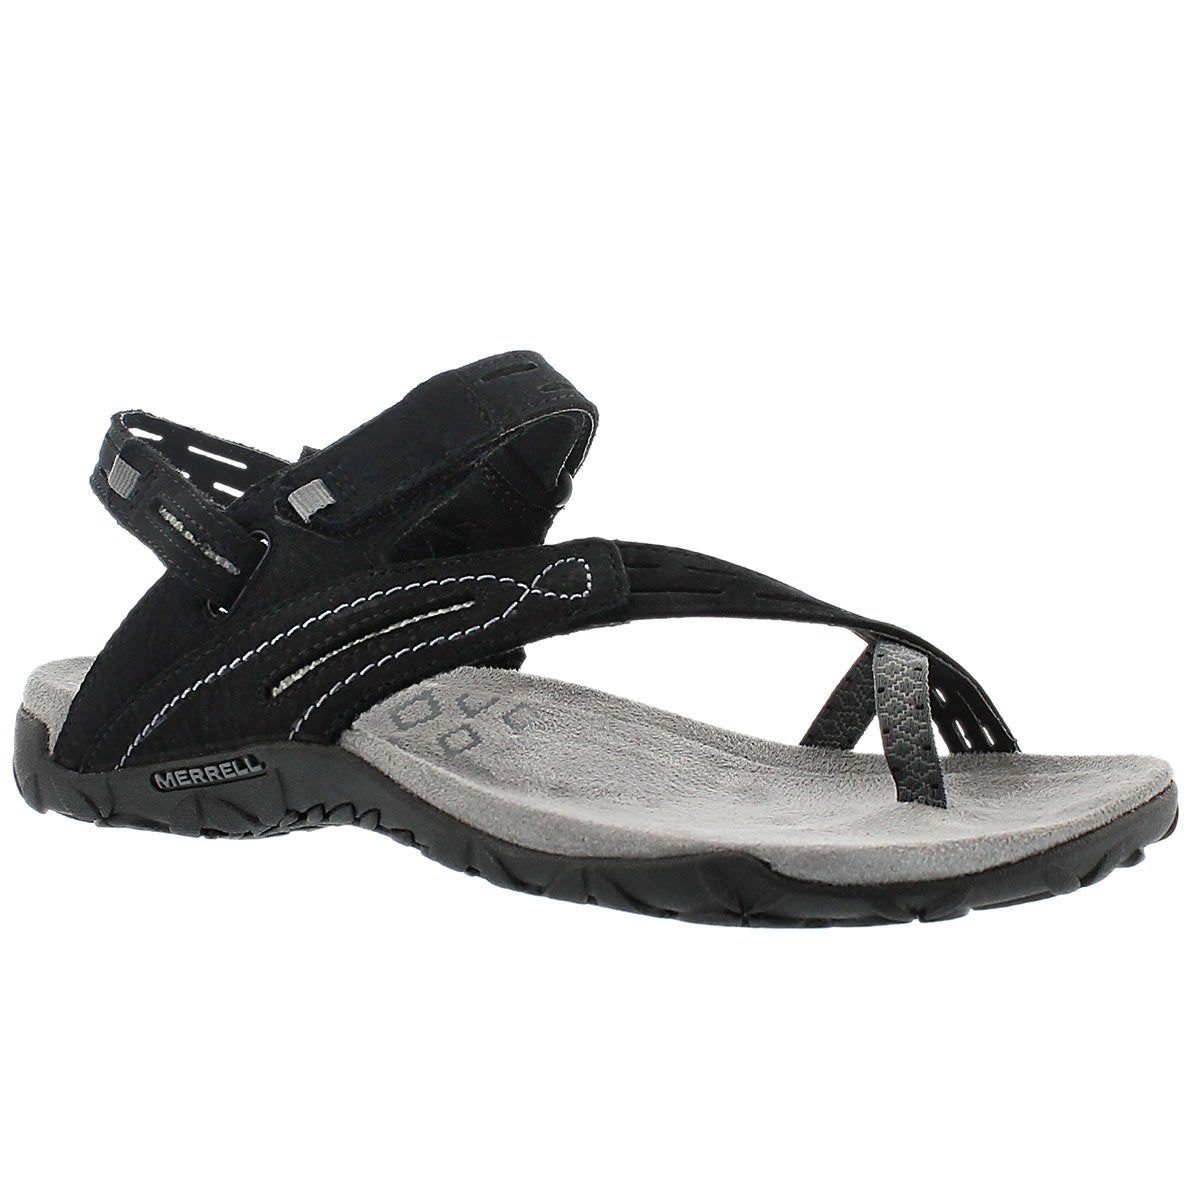 Women's TERRAN CONVERTIBLE II black sandals